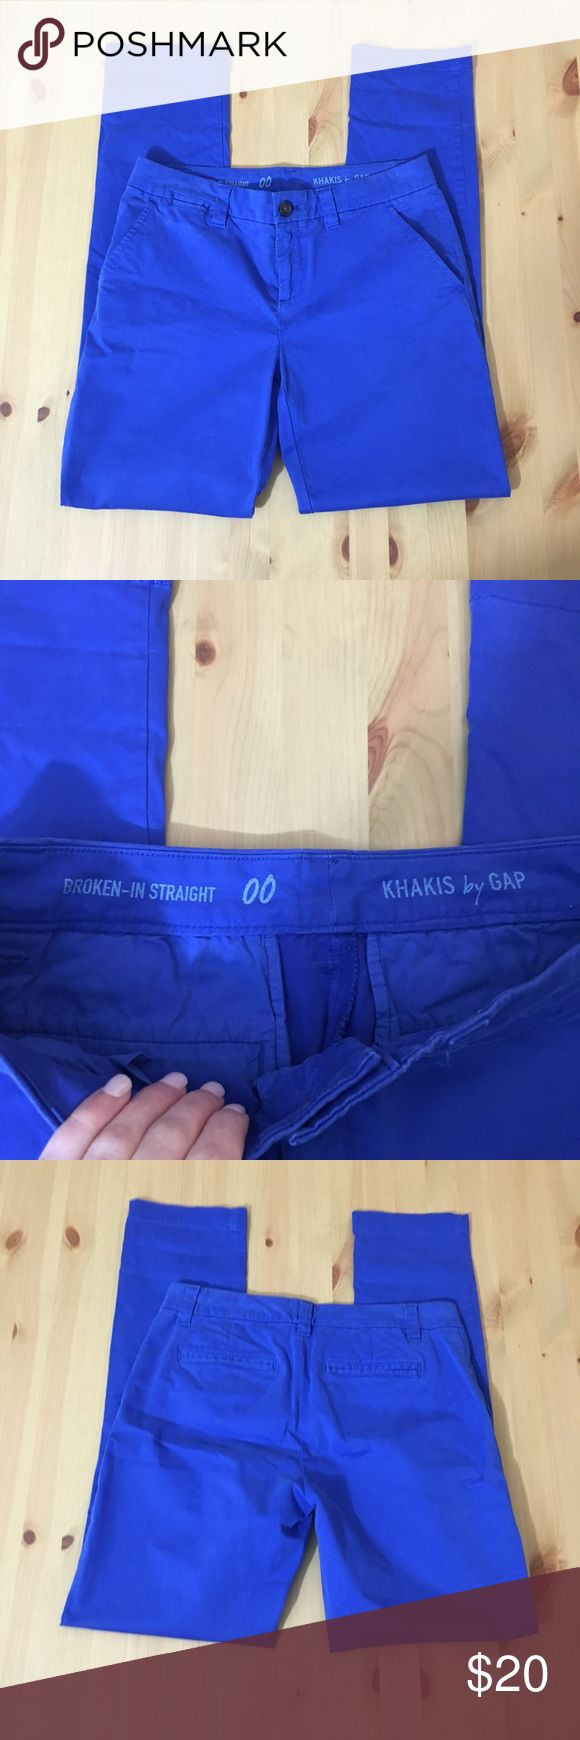 """GAP """"Broken in Straight"""" Royal Blue Khakis EUC! """"Broken in Straight"""" royal blue khaki pants. 29"""" inseam, 9"""" rise. Size 00. I'm a speedy shipper and we have a smoke free home! Measurements upon request. I'm always open to reasonable offers. GAP Pants Straight Leg"""